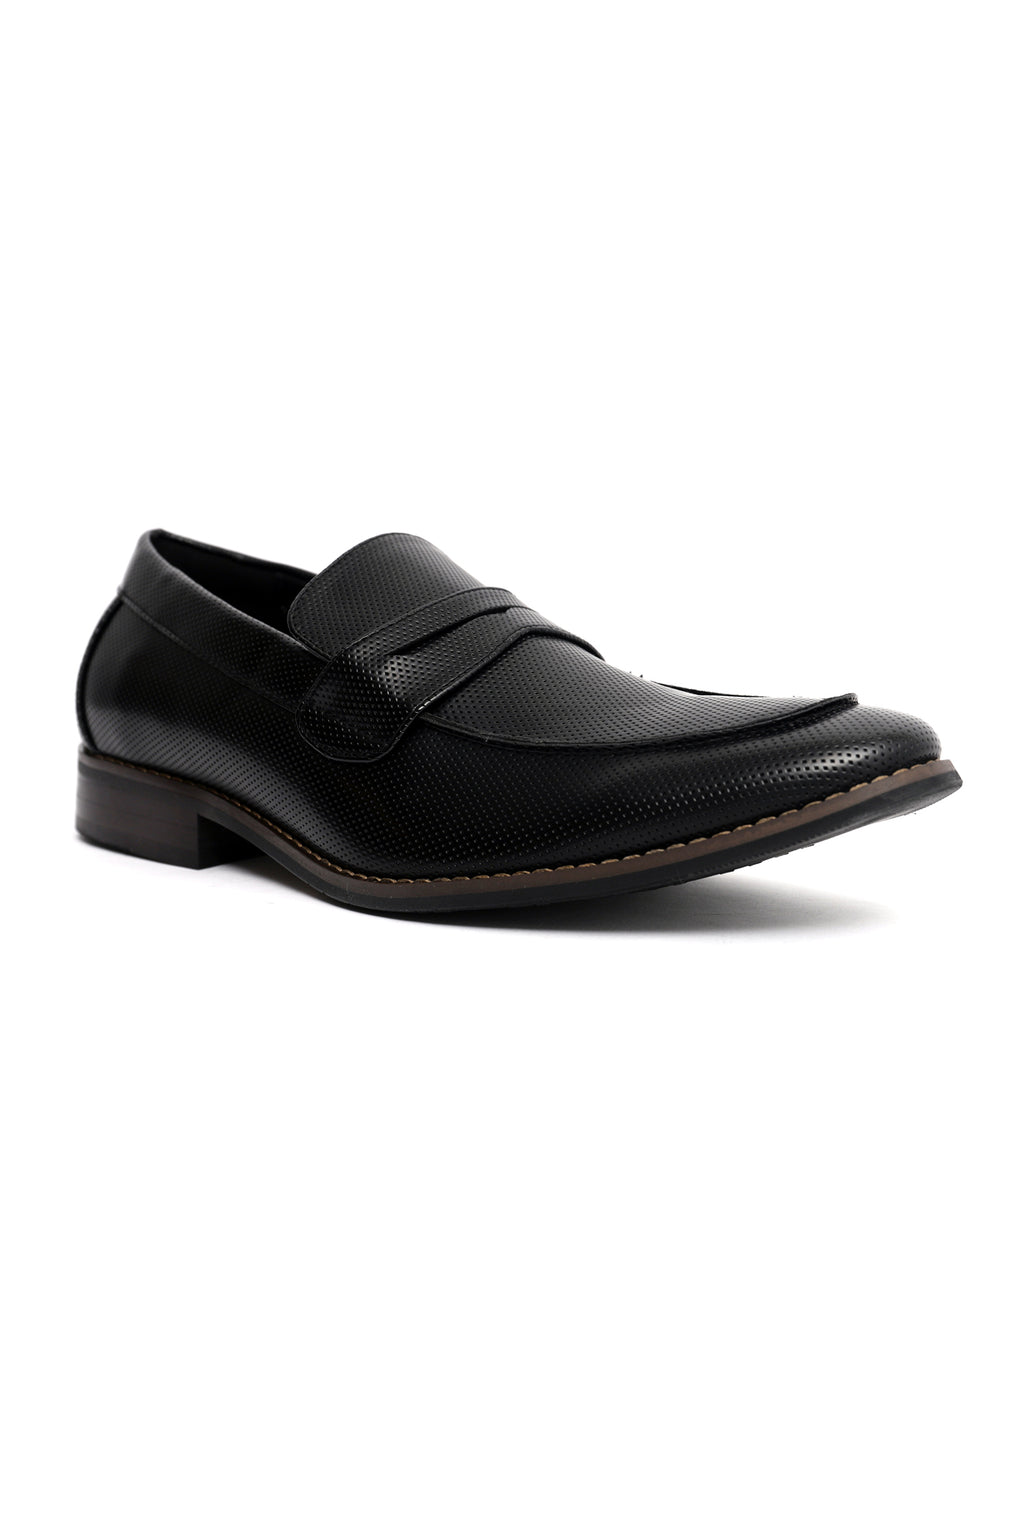 EMBOSSED PENNY LOAFERS -BLACK